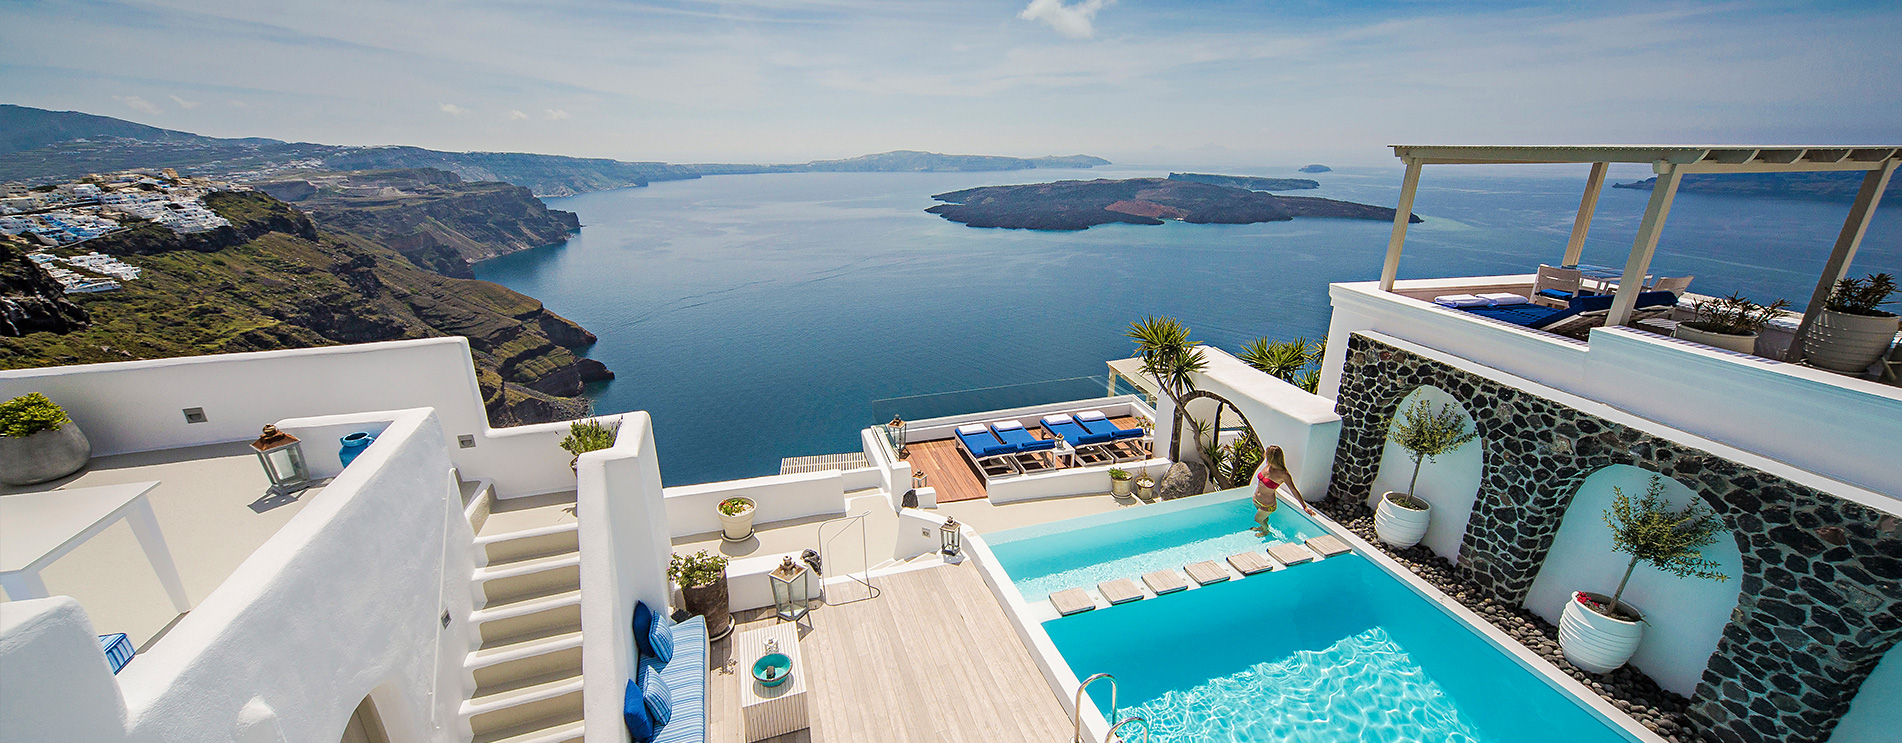 Iconic Santorini Luxury Boutique Cave Hotel Imerovigli Greece Best Island